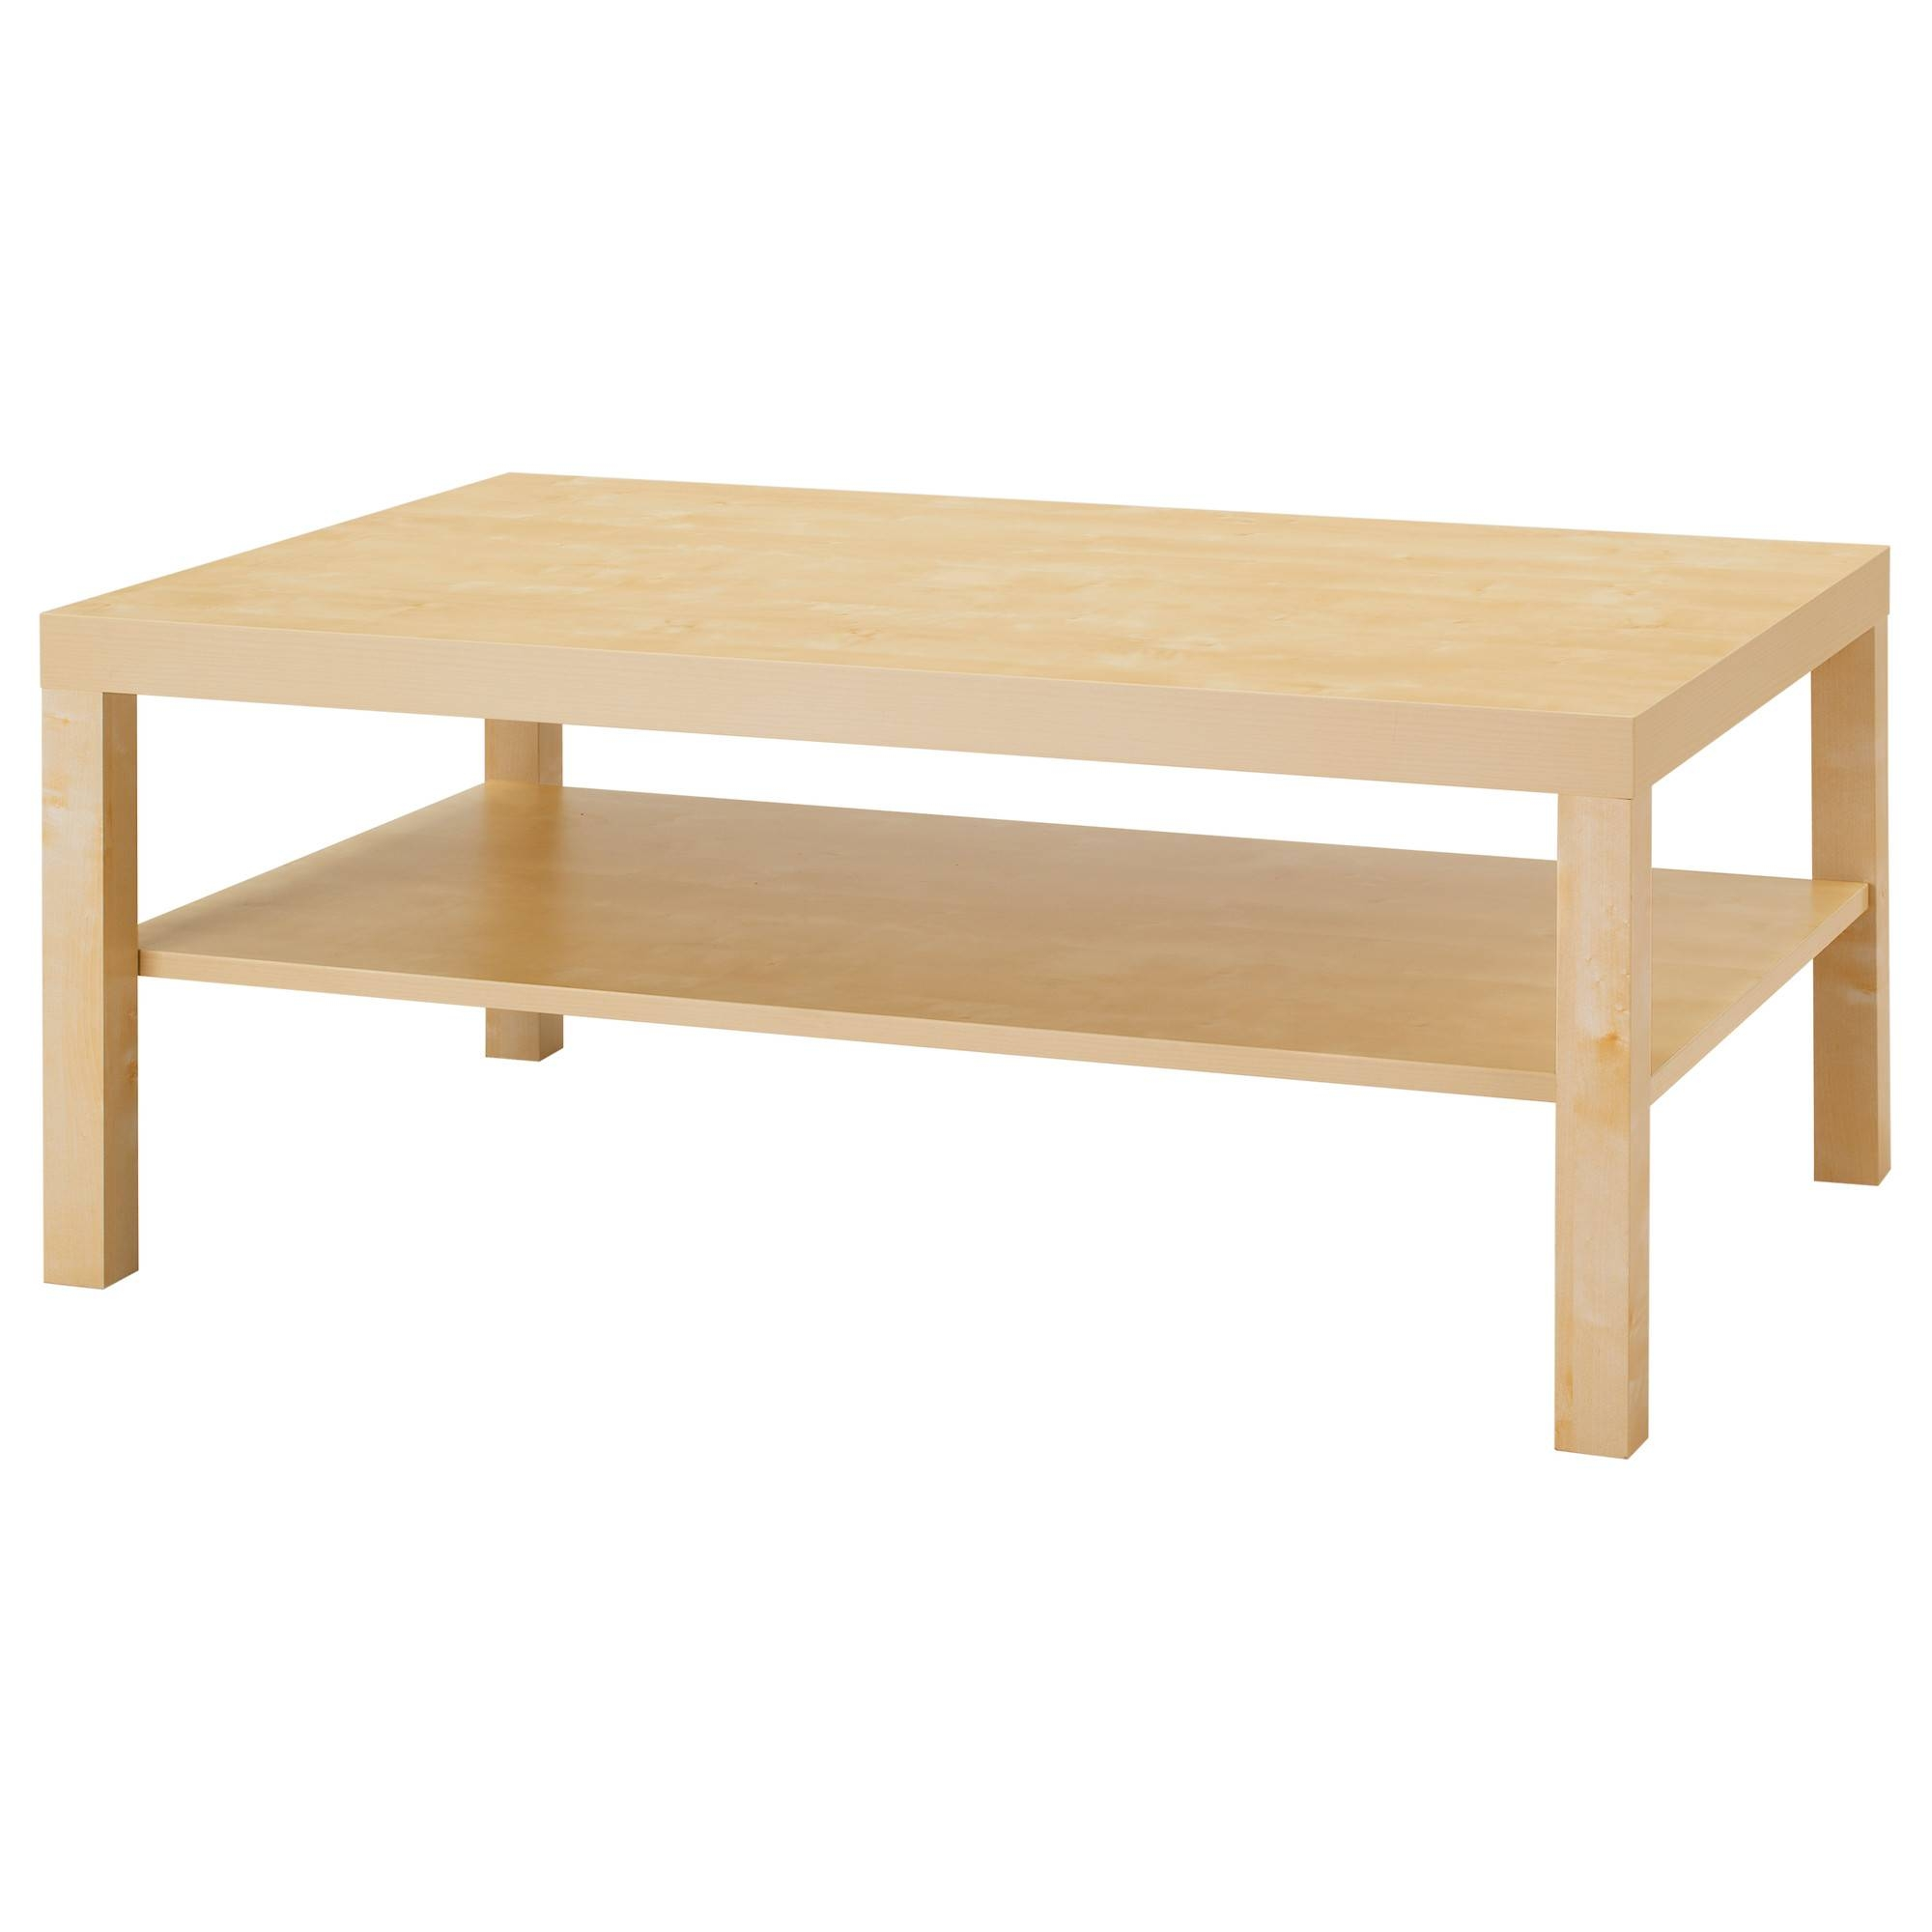 Lack Coffee Table - Black-Brown - Ikea pertaining to Cheap Wood Coffee Tables (Image 23 of 30)